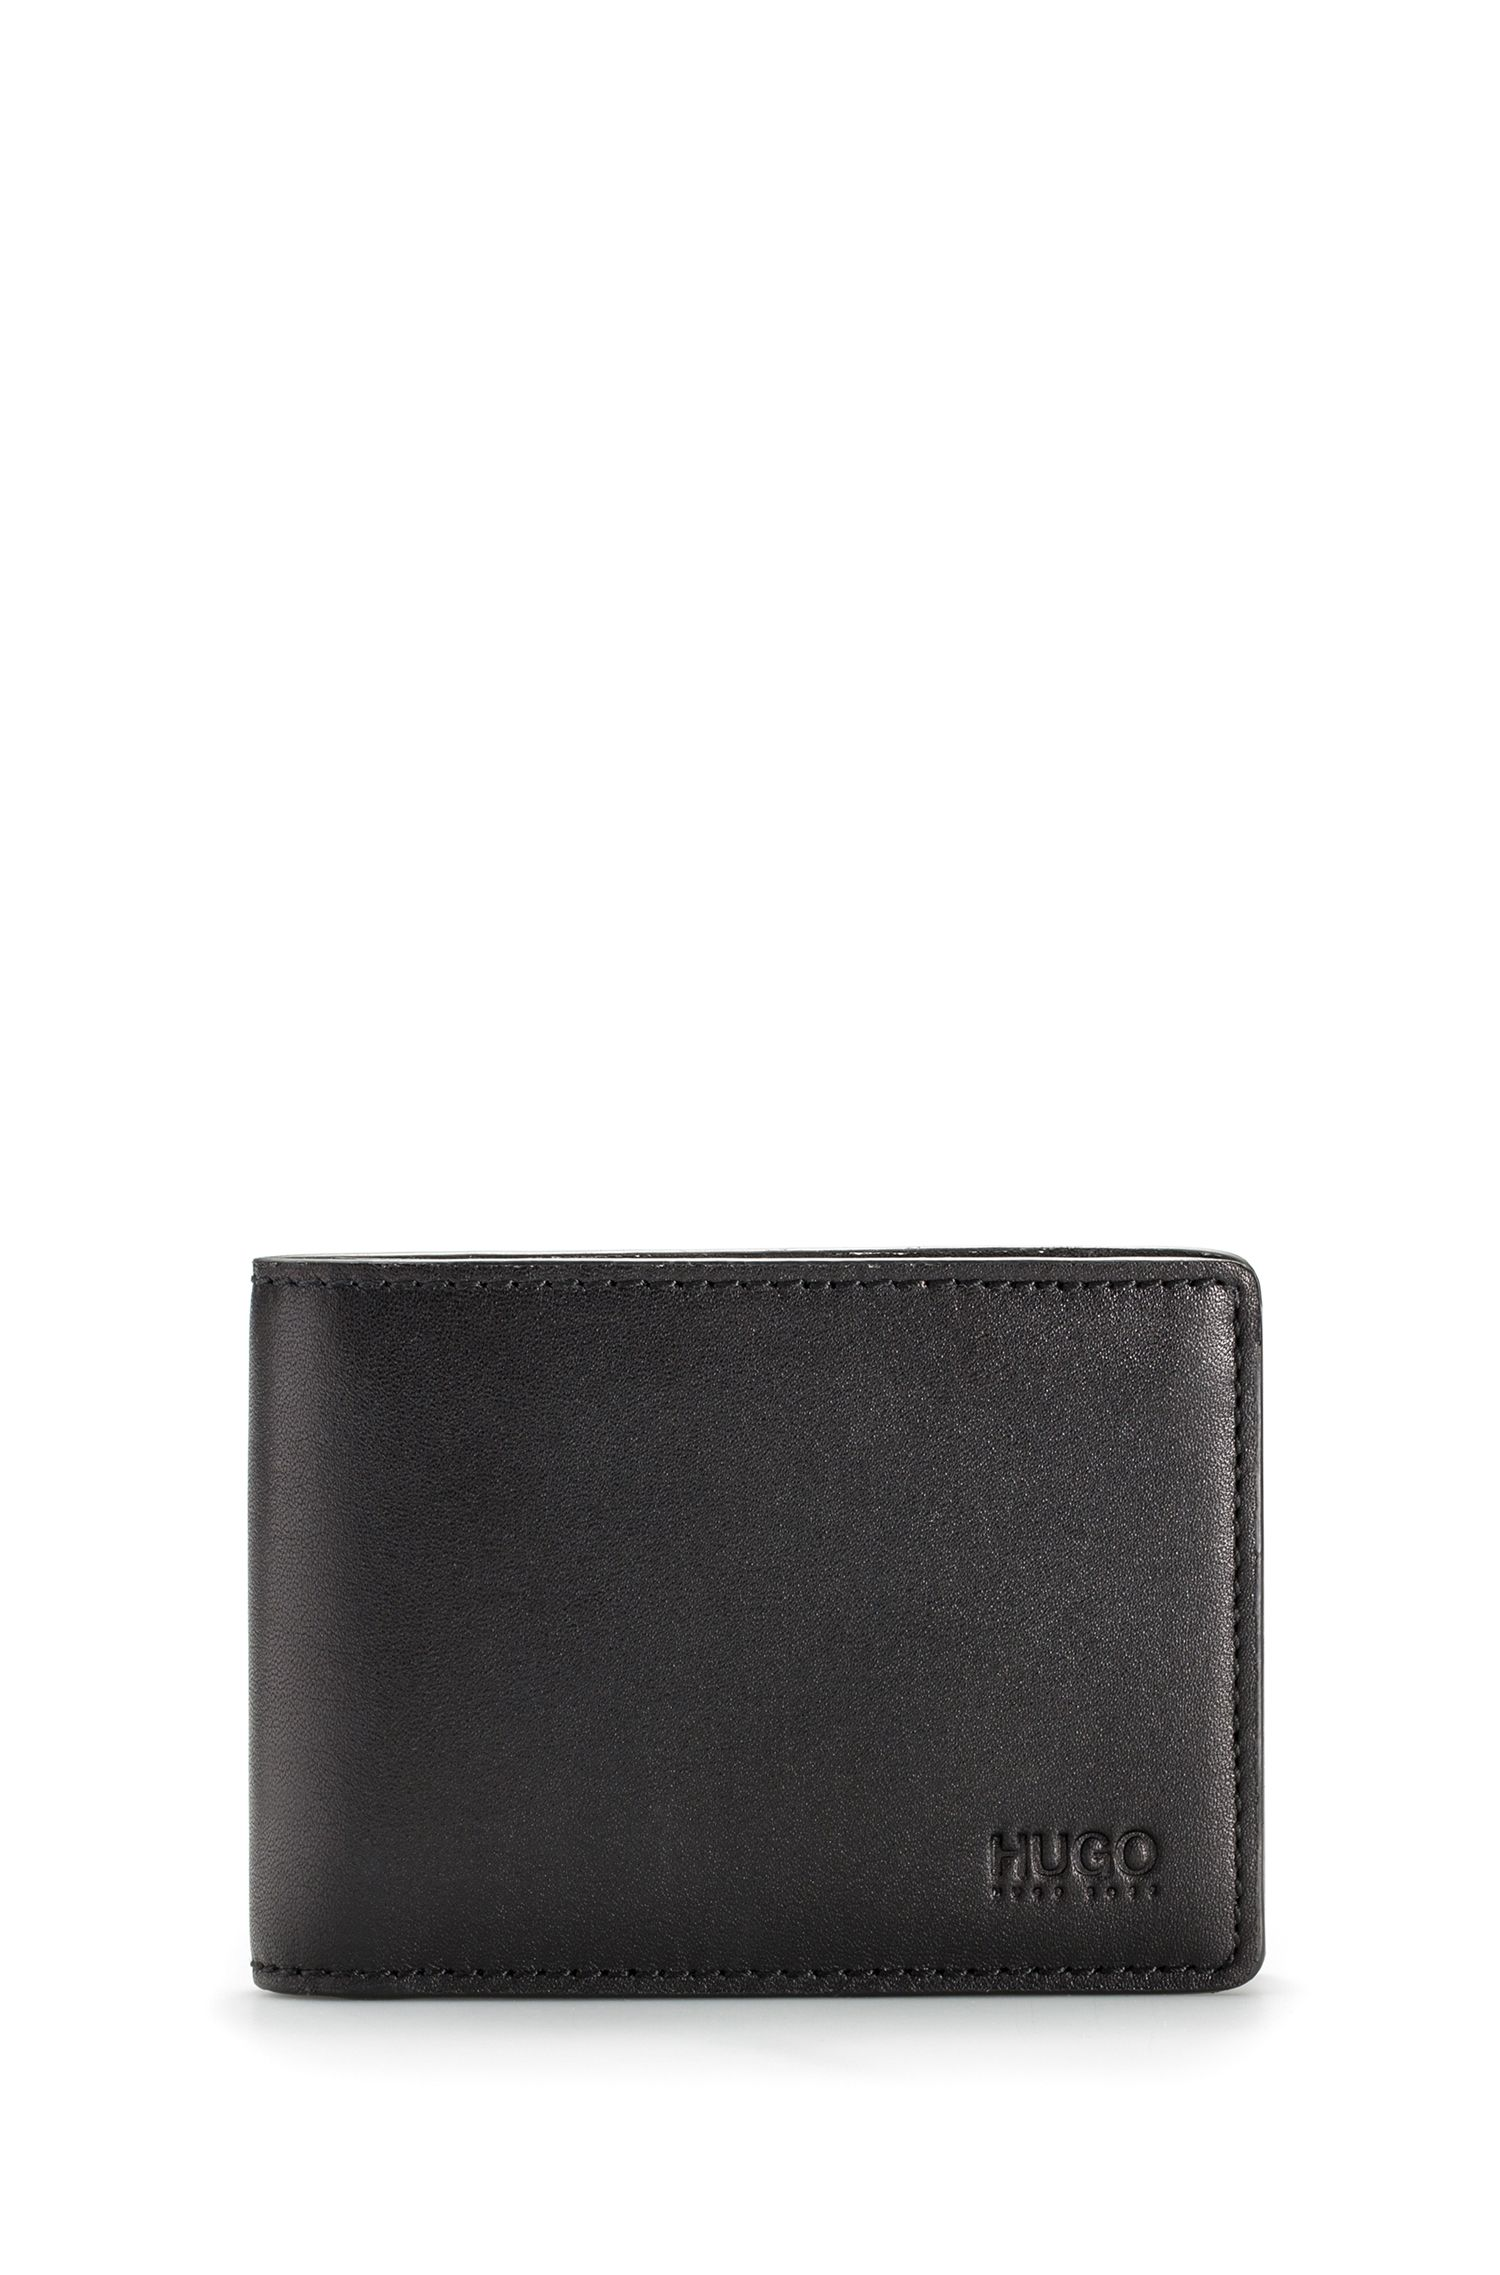 Leather Billfold Wallet | Subway